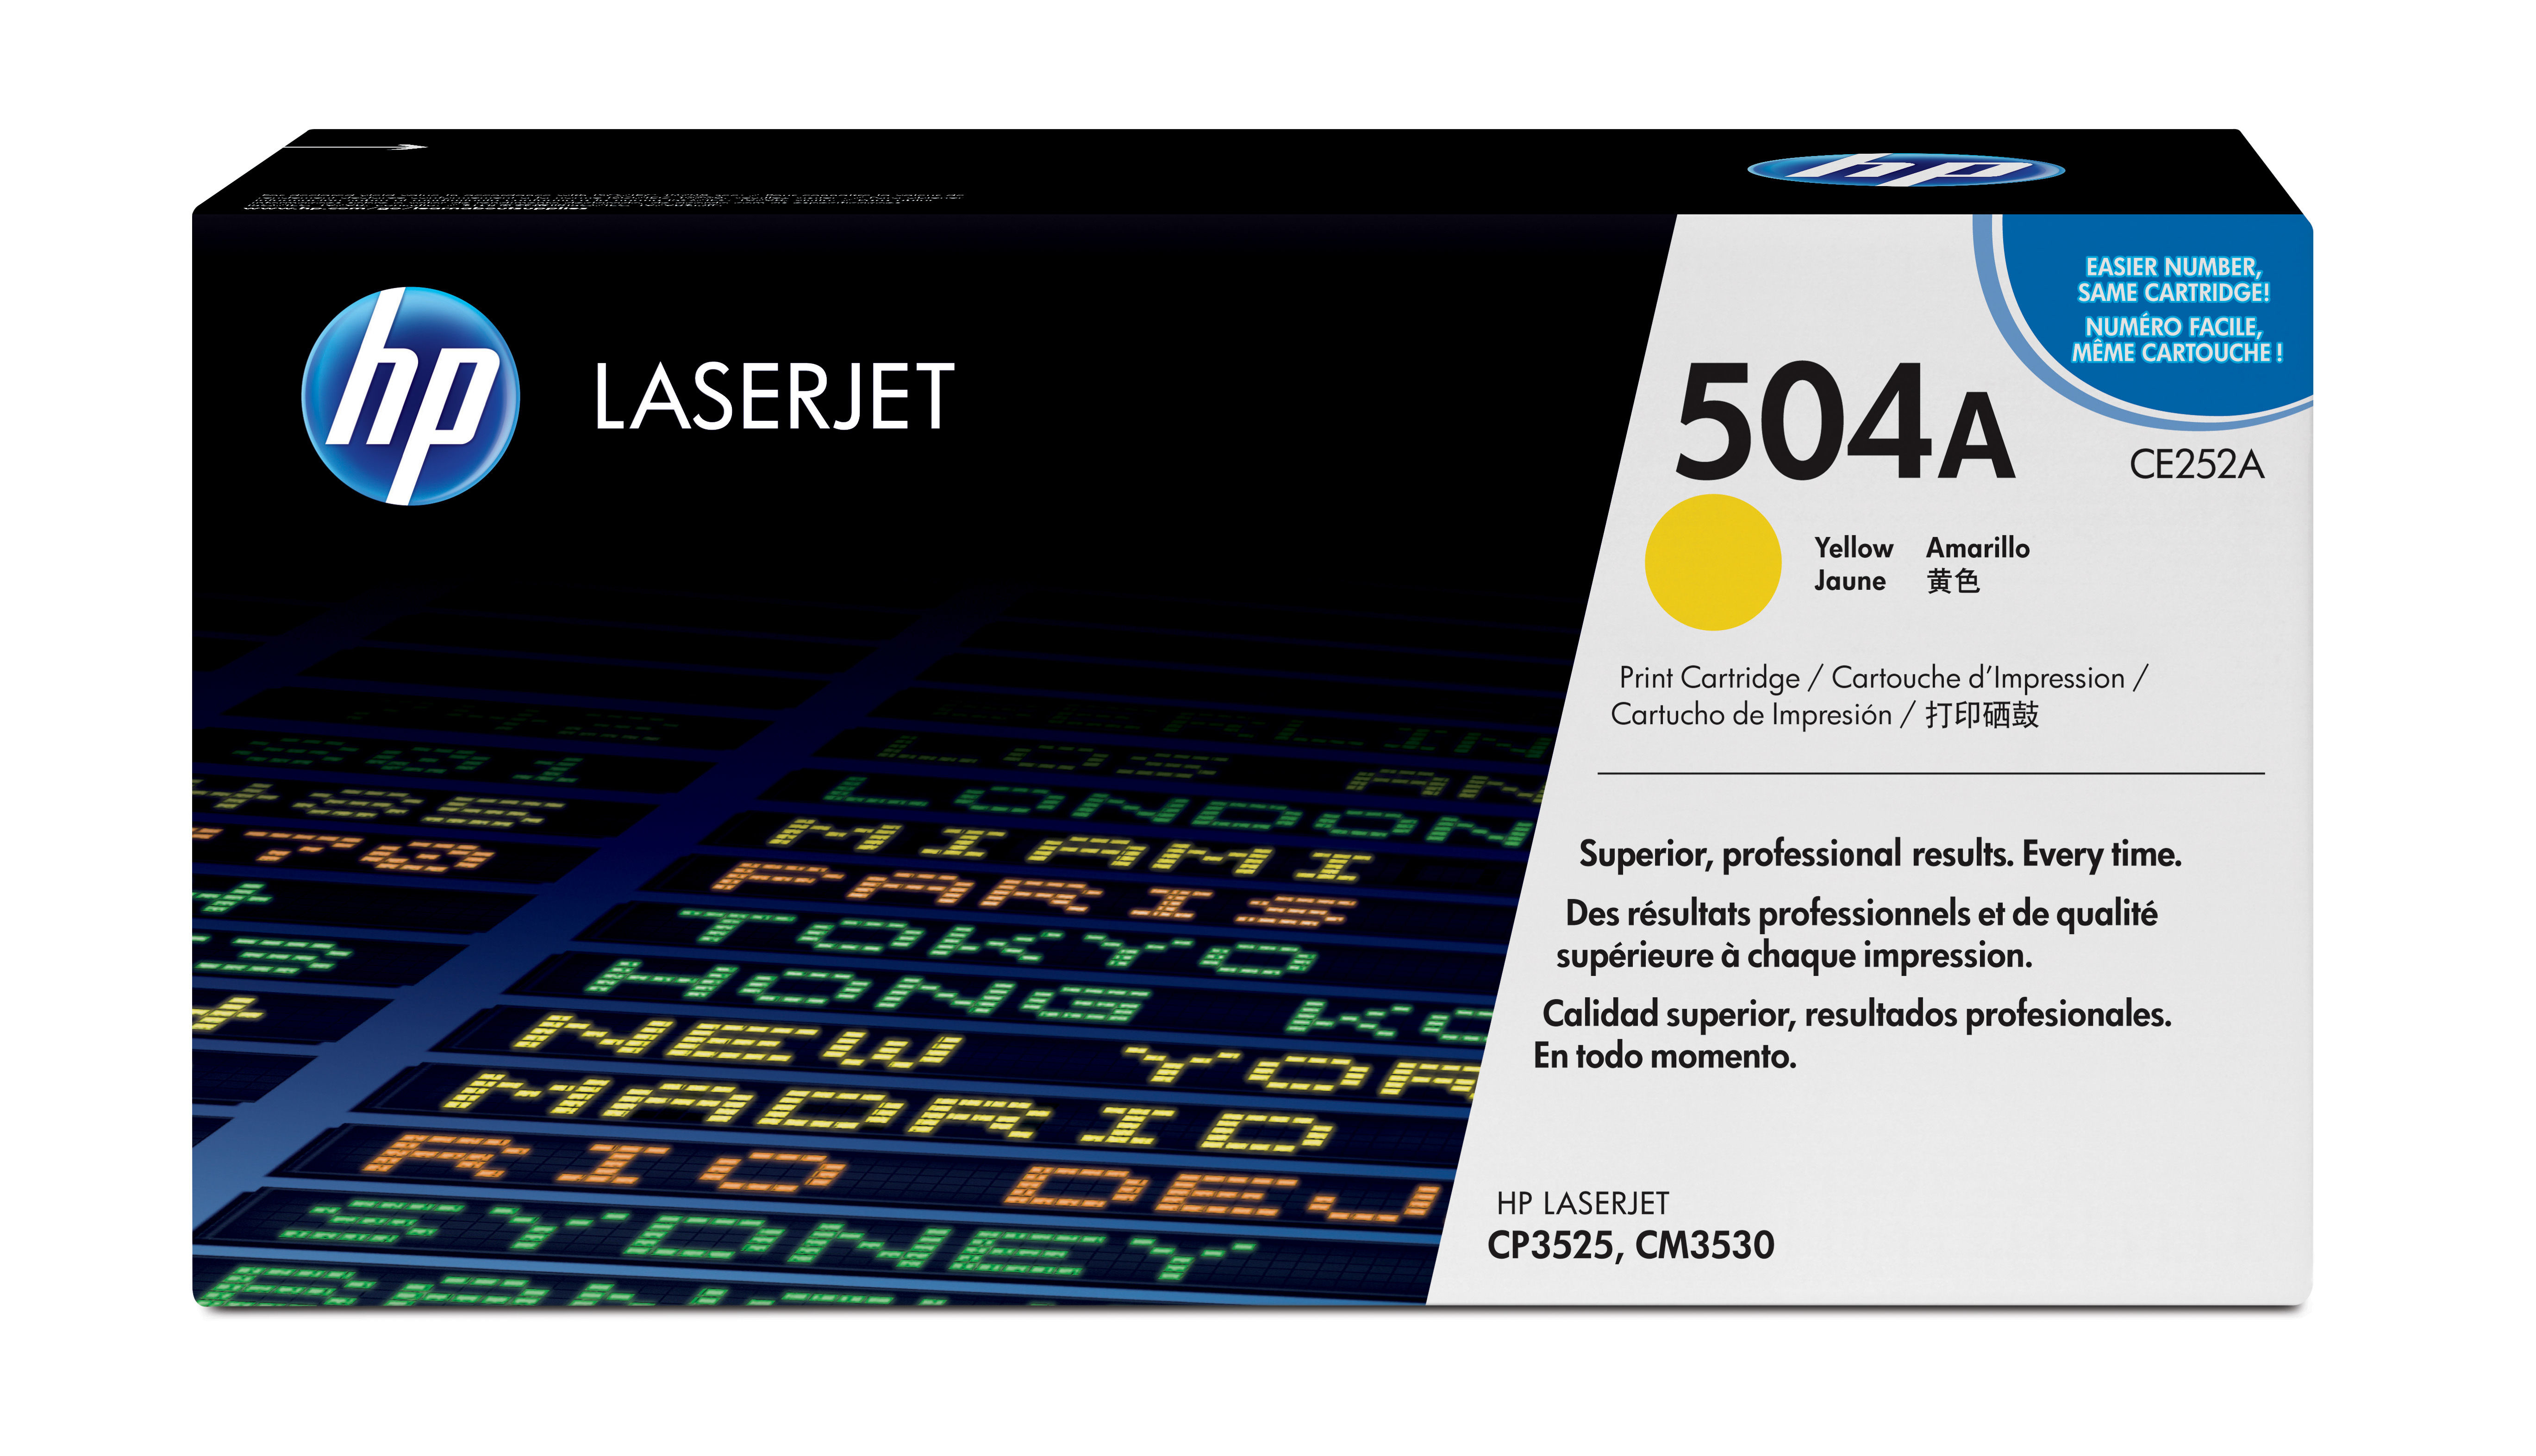 Remanufactured HP CE252A Toner Cartridge Yellow 7k CE252A - rem01